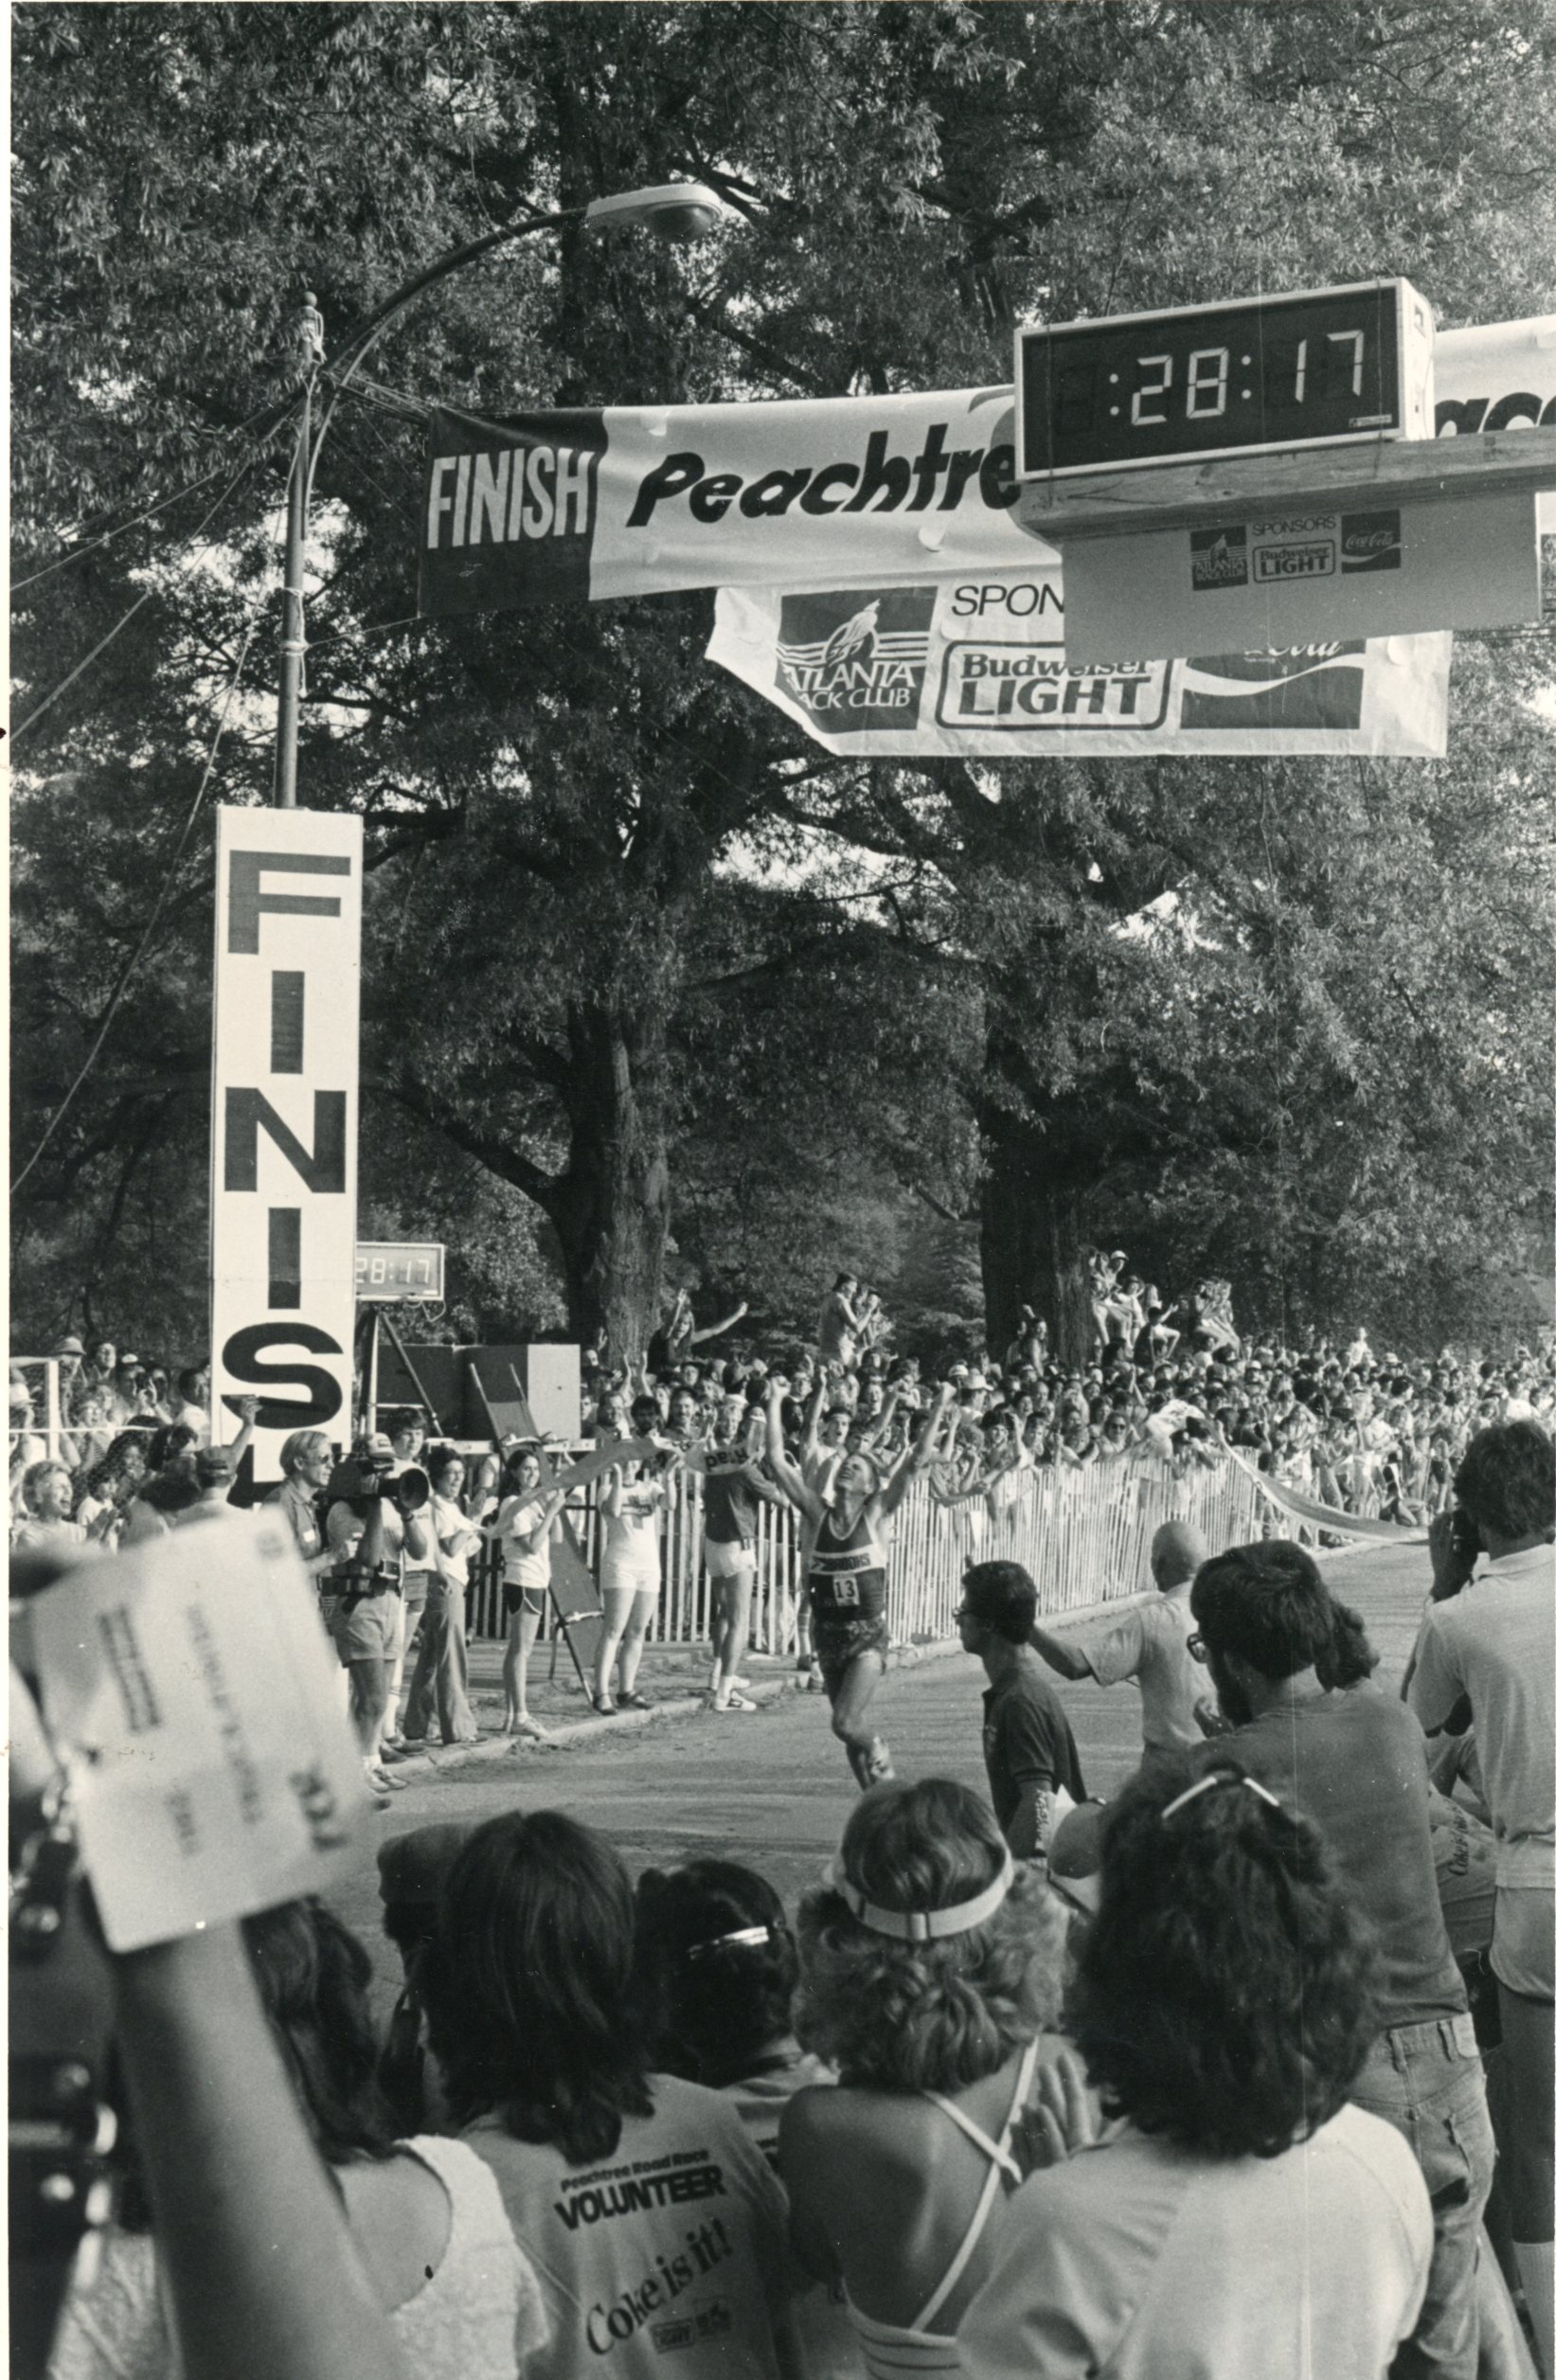 Jon Sinclair runs the Peachtree Road Race in 1982.